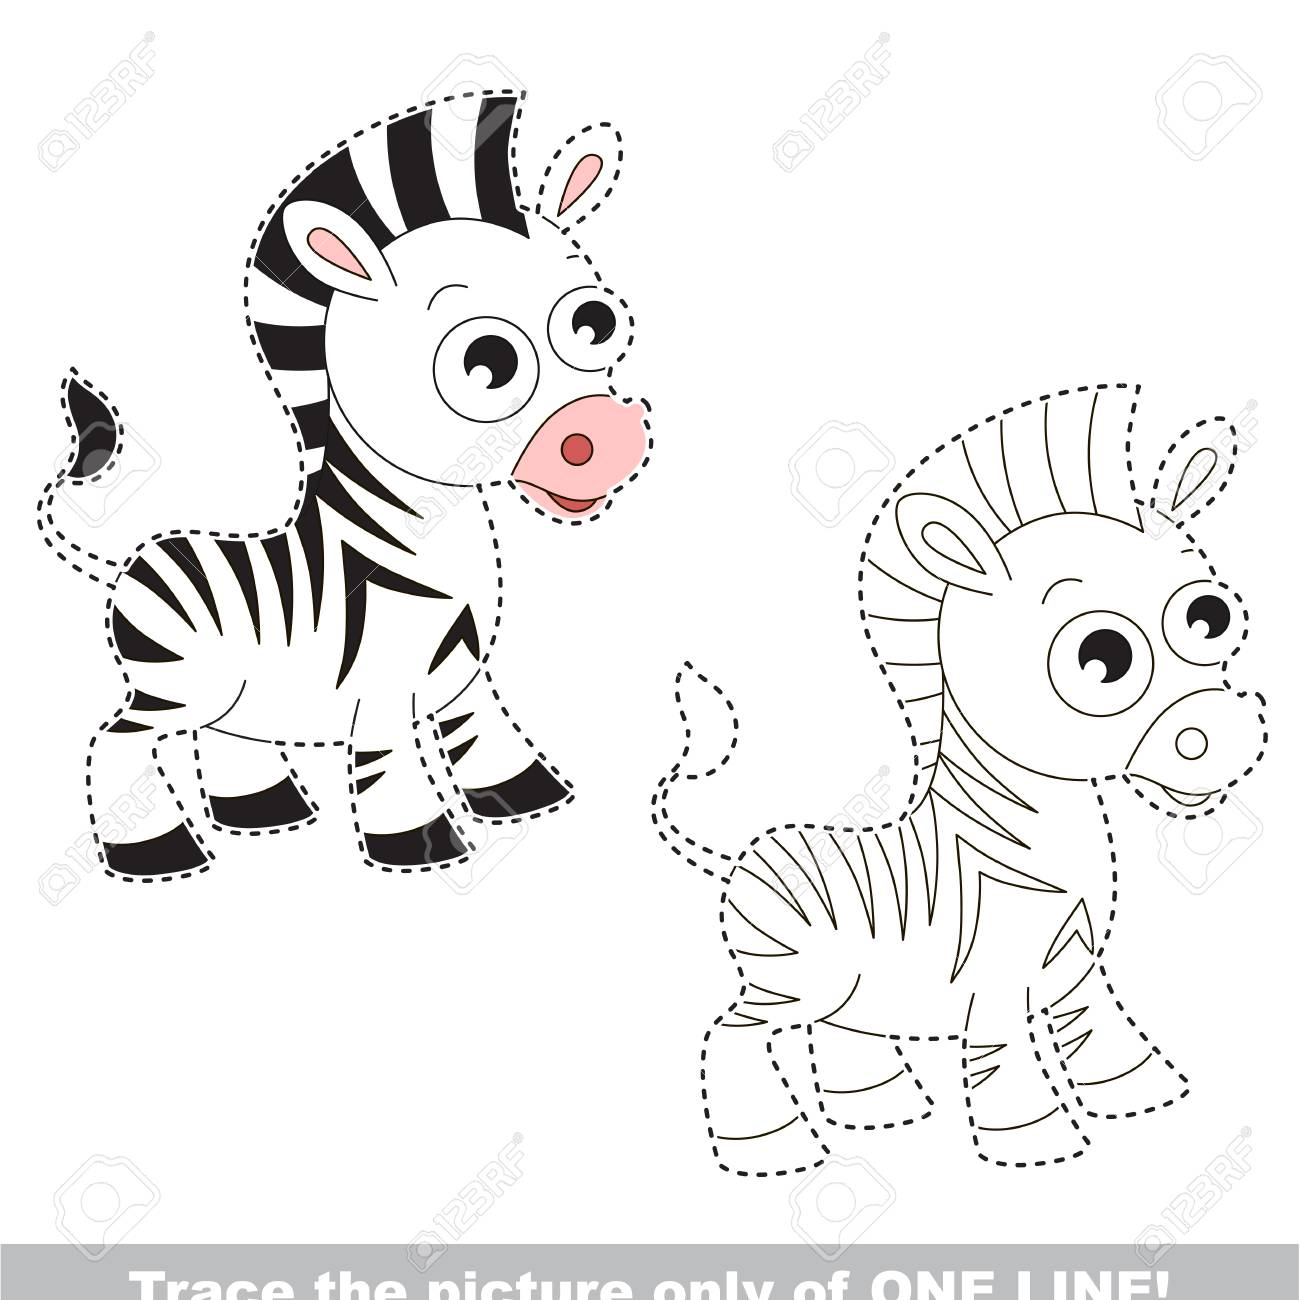 Vector   Zebra Horse To Be Traced Only Of One Line, The Tracing Educational  Game To Preschool Kids With Easy Game Level, The Colorful And Colorless  Version.